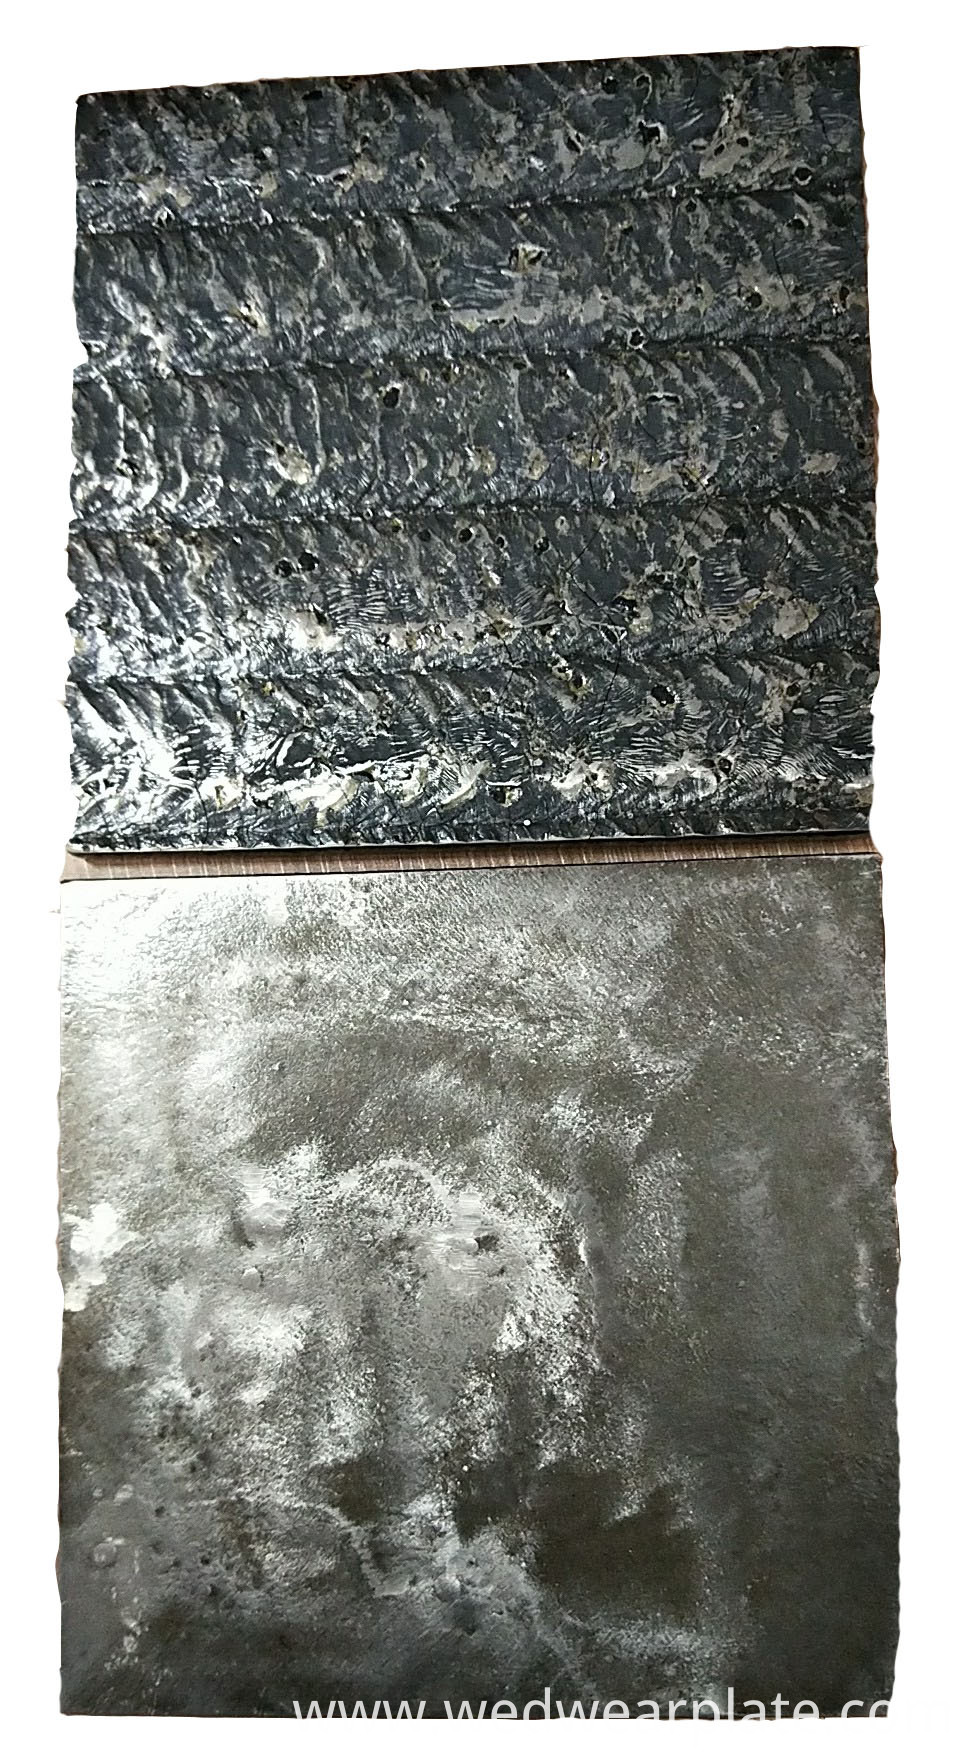 submerged arc welding plate